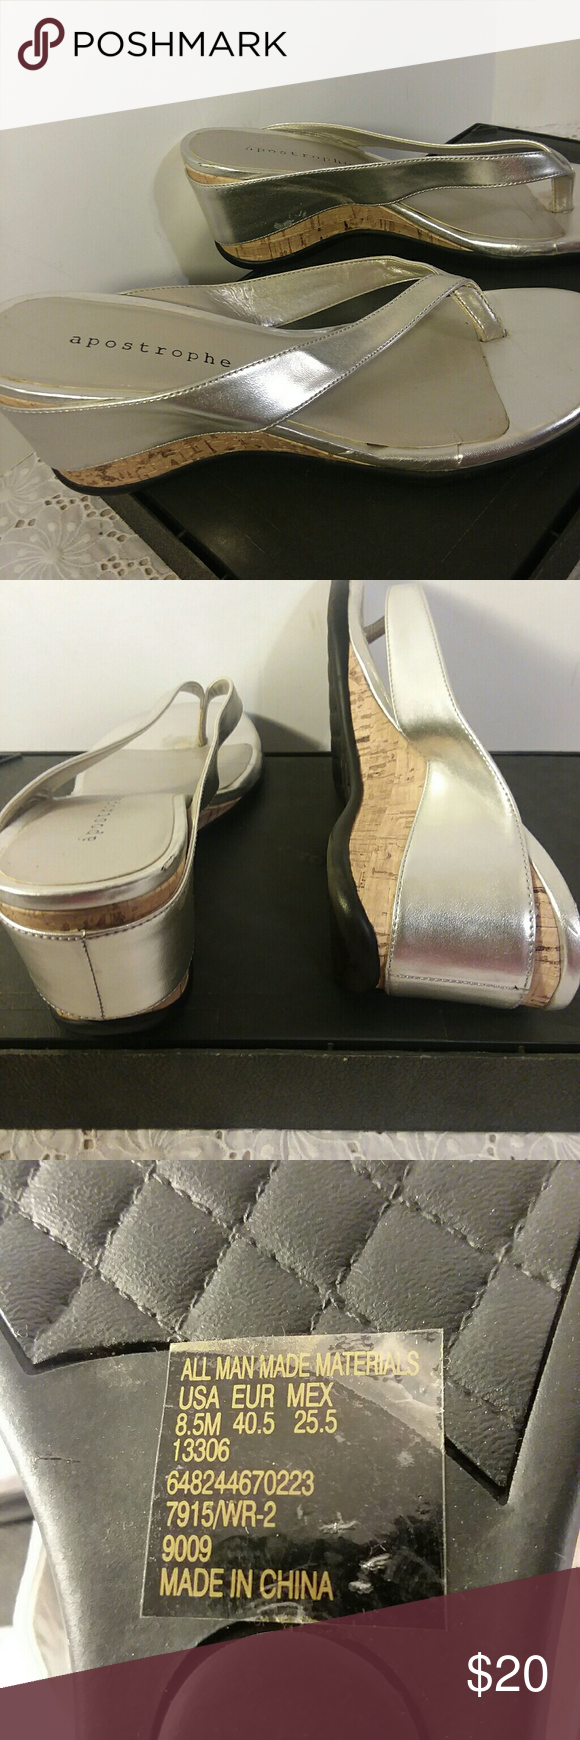 Apostrophe Wedge Sandals Silver flip flop style low wedge slip one. Can be casual or dressy casual. Comfortable, cute great condition. apostrophe Other #lowwedgesandals Apostrophe Wedge Sandals Silver flip flop style low wedge slip one. Can be casual or dressy casual. Comfortable, cute great condition. apostrophe Other #lowwedgesandals